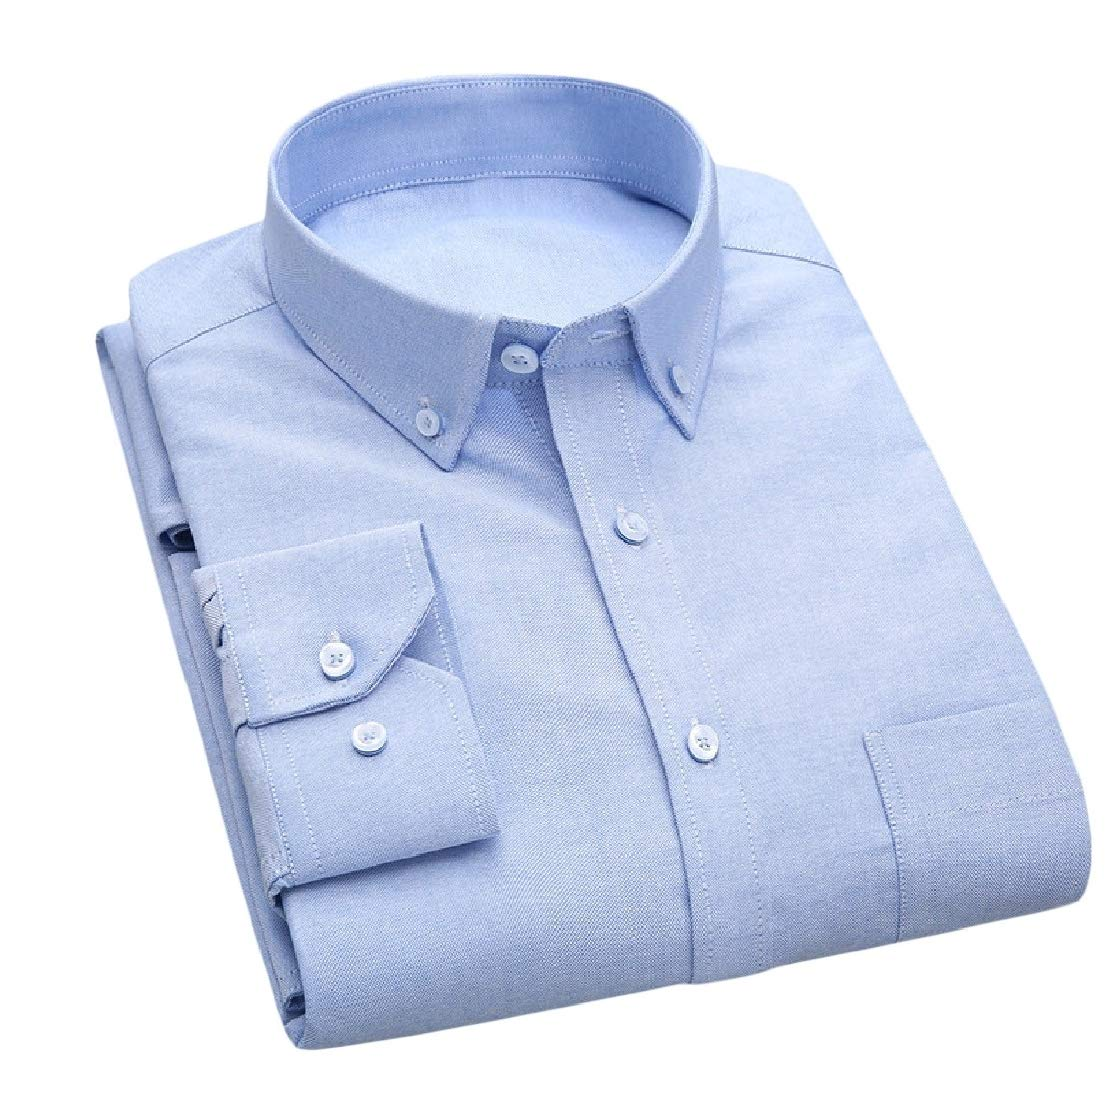 Cromoncent Men Casual Slim Fit Long-Sleeve Button Up Cotton Solid Shirts